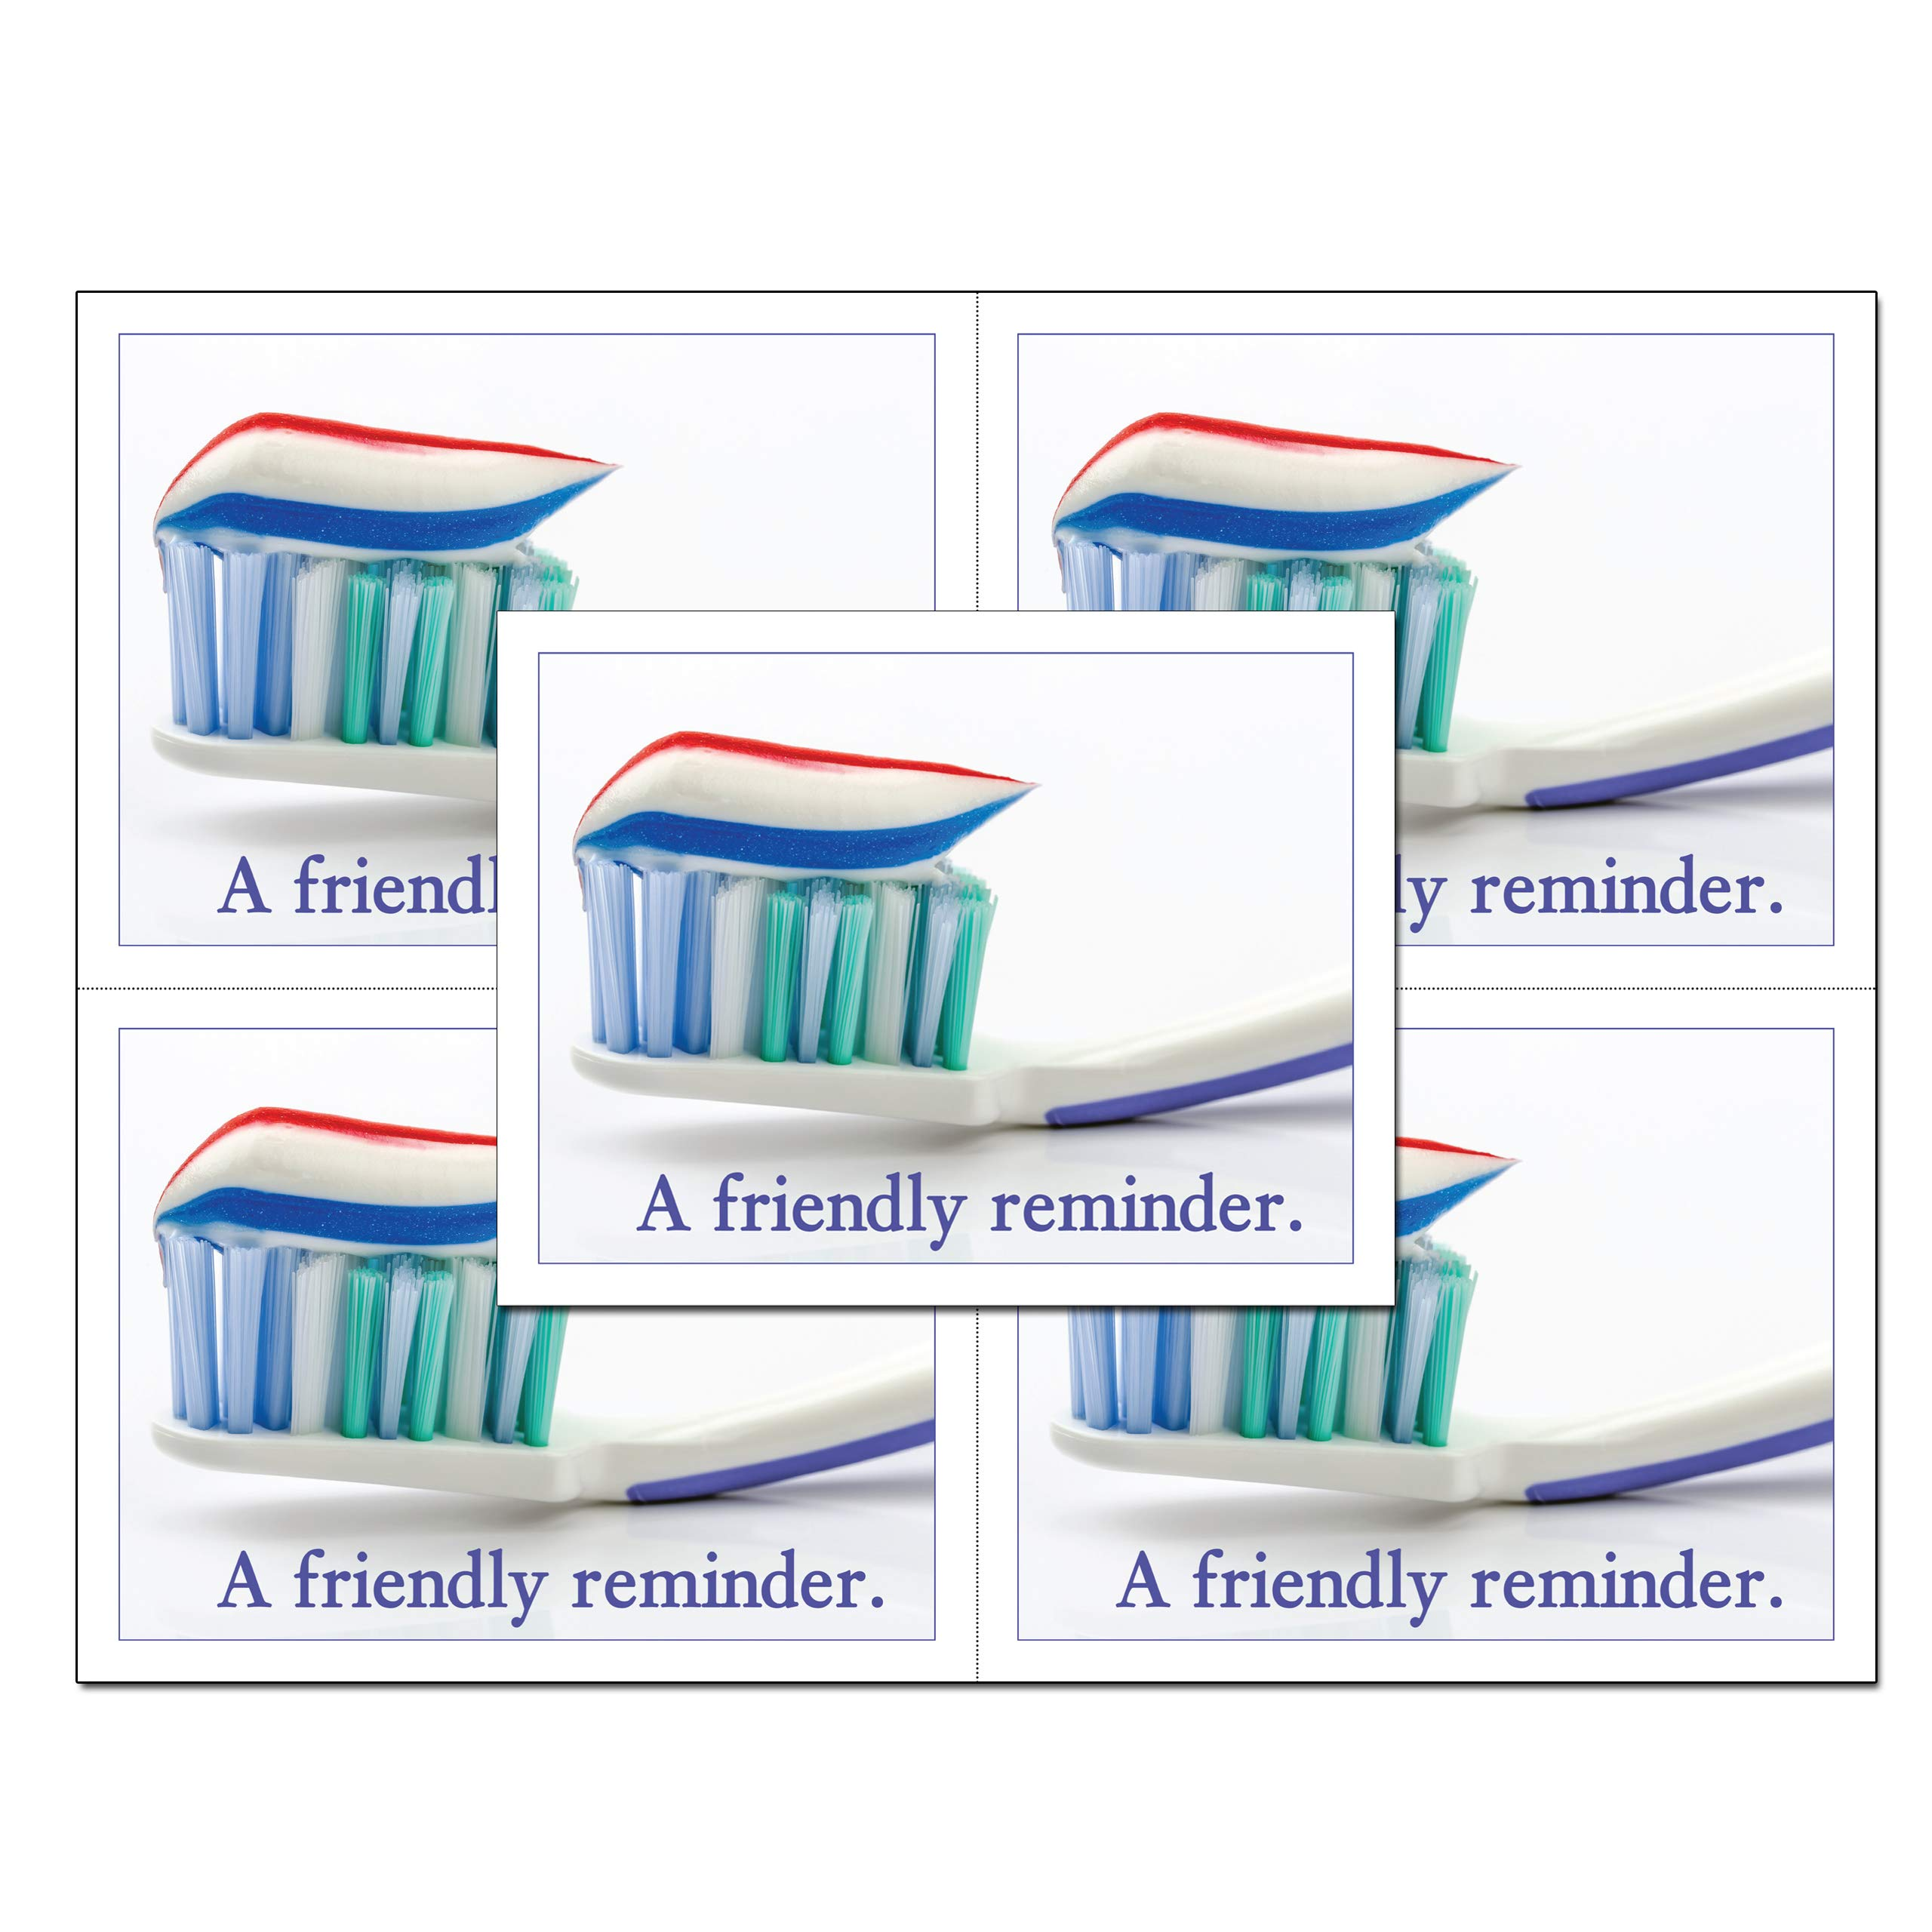 Laser Reminder Postcards, Dental Appointment Reminder Postcards. 4 Cards Perforated for Tear-off at 4.25'' x 5.5'' on an 8.5'' x 11'' Sheet of 8 Pt Card Stock. (2500) by Custom Recall